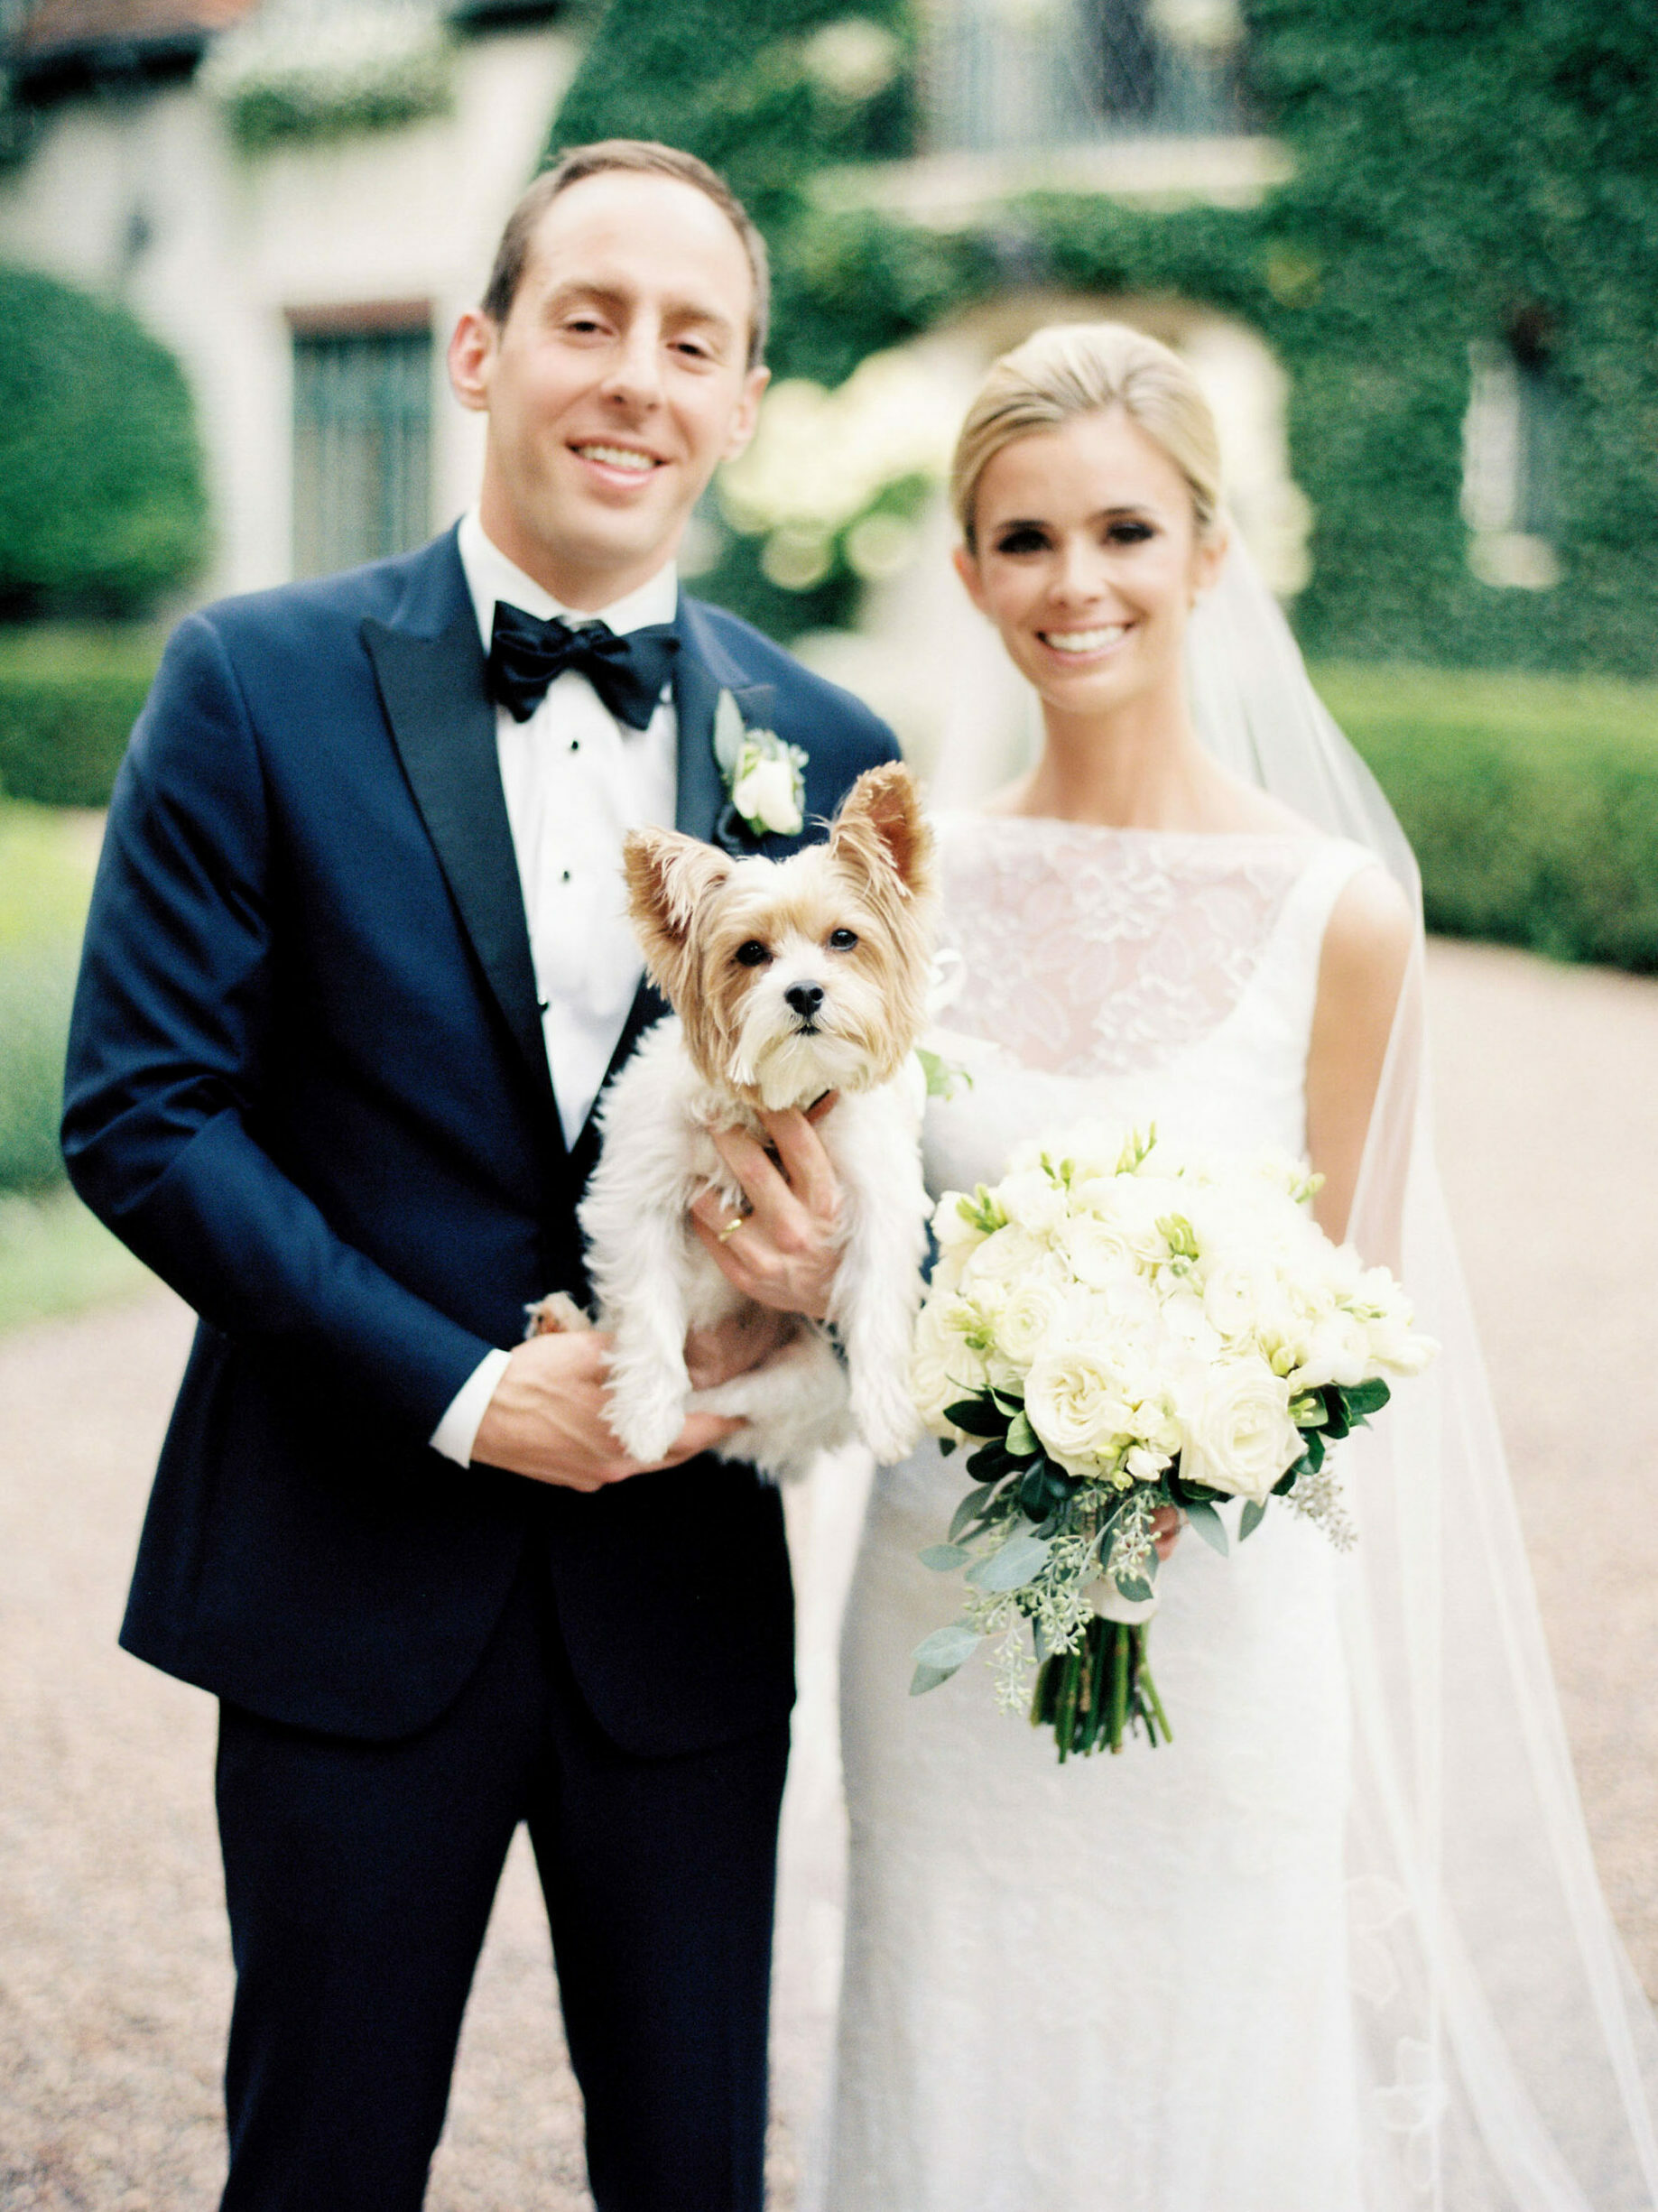 film wedding photos of couple with dog at a lake forest backyard wedding